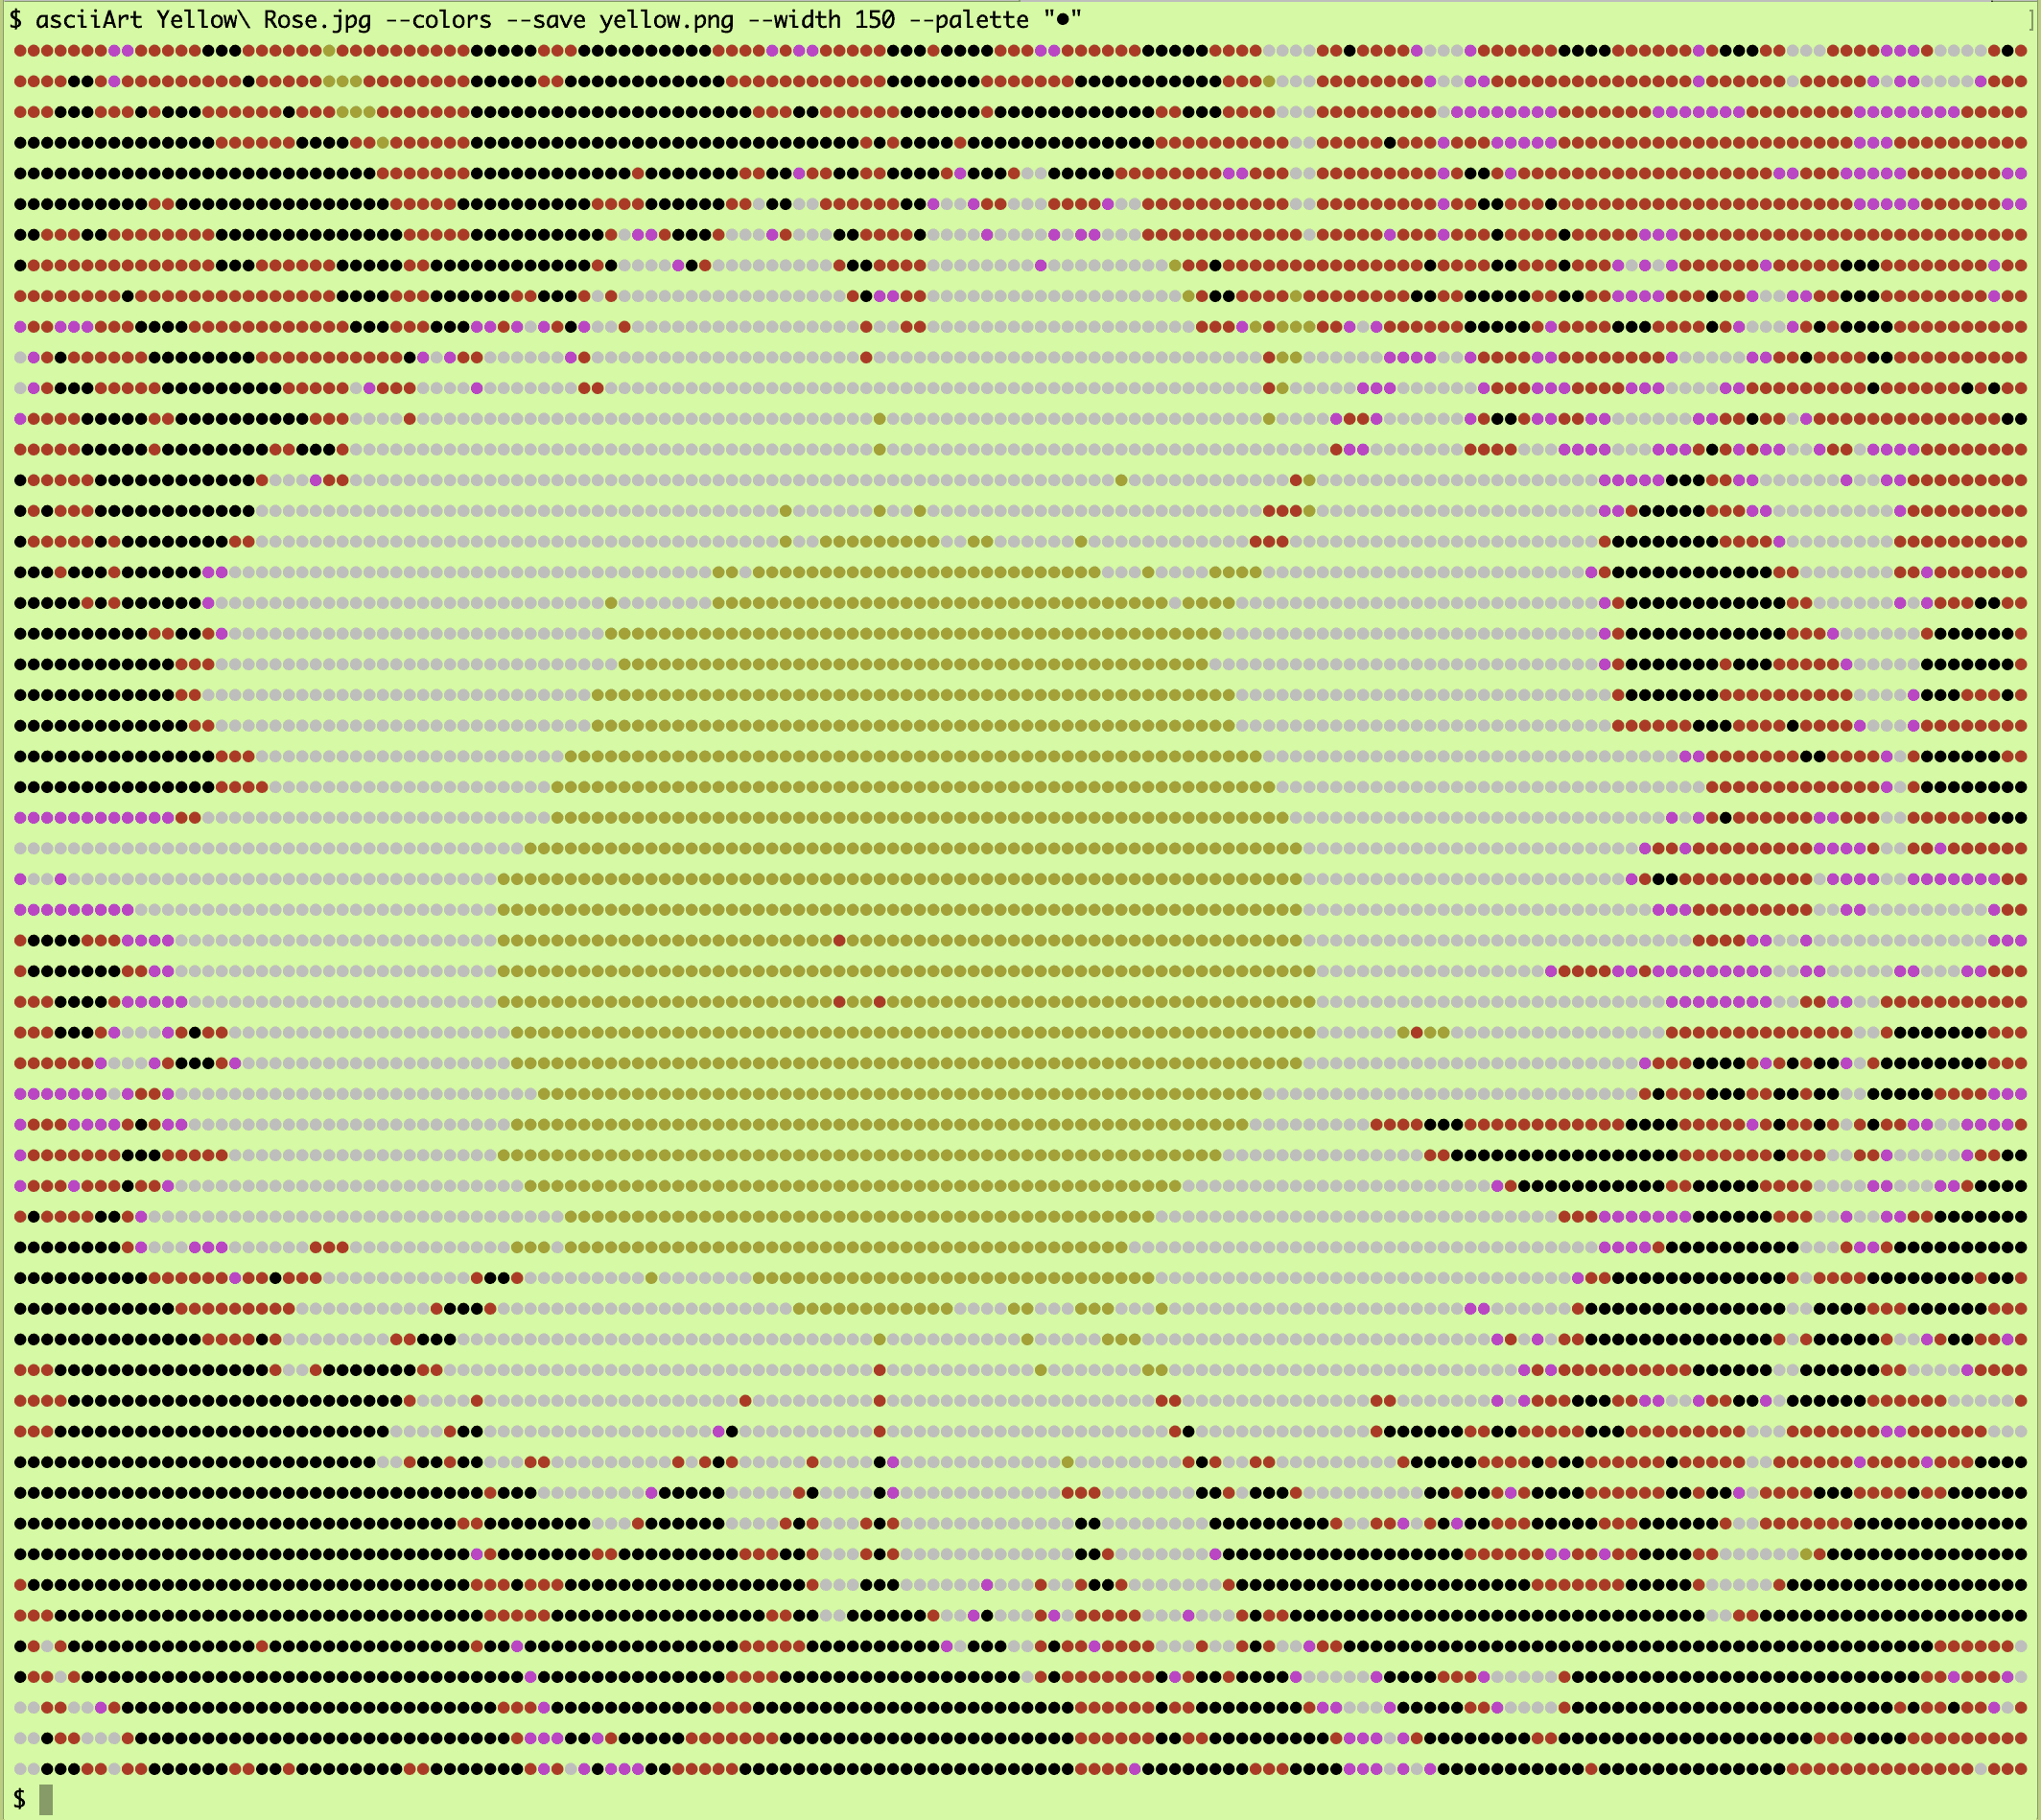 Yellow Rose ASCII art